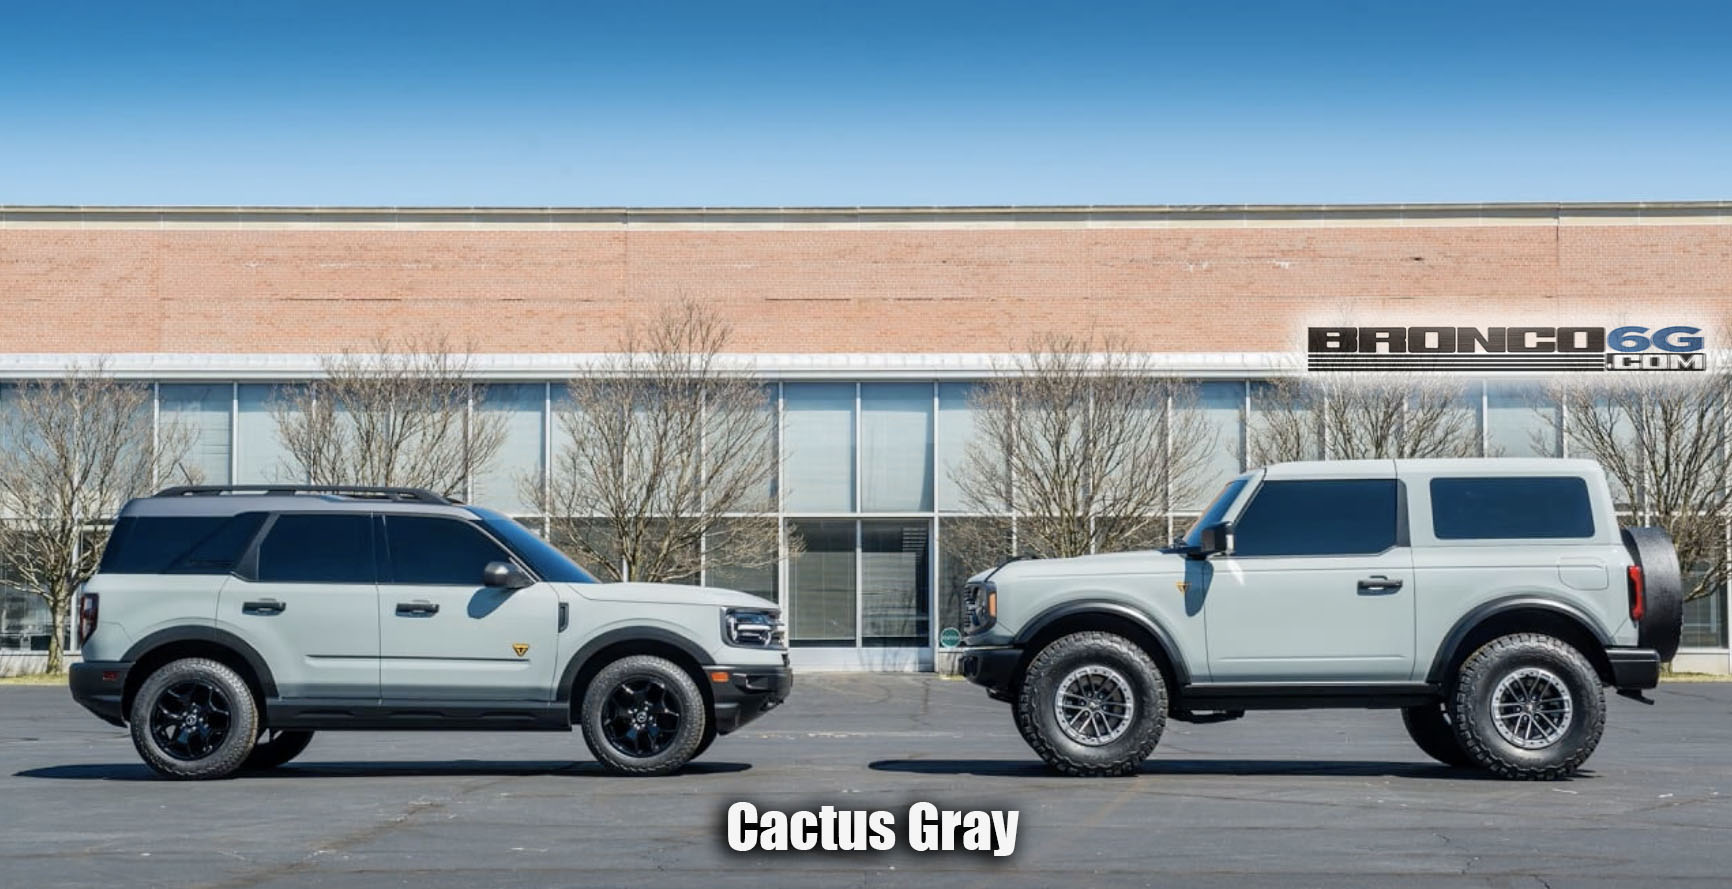 2021 Bronco 2 Door Cactus Gray.jpg